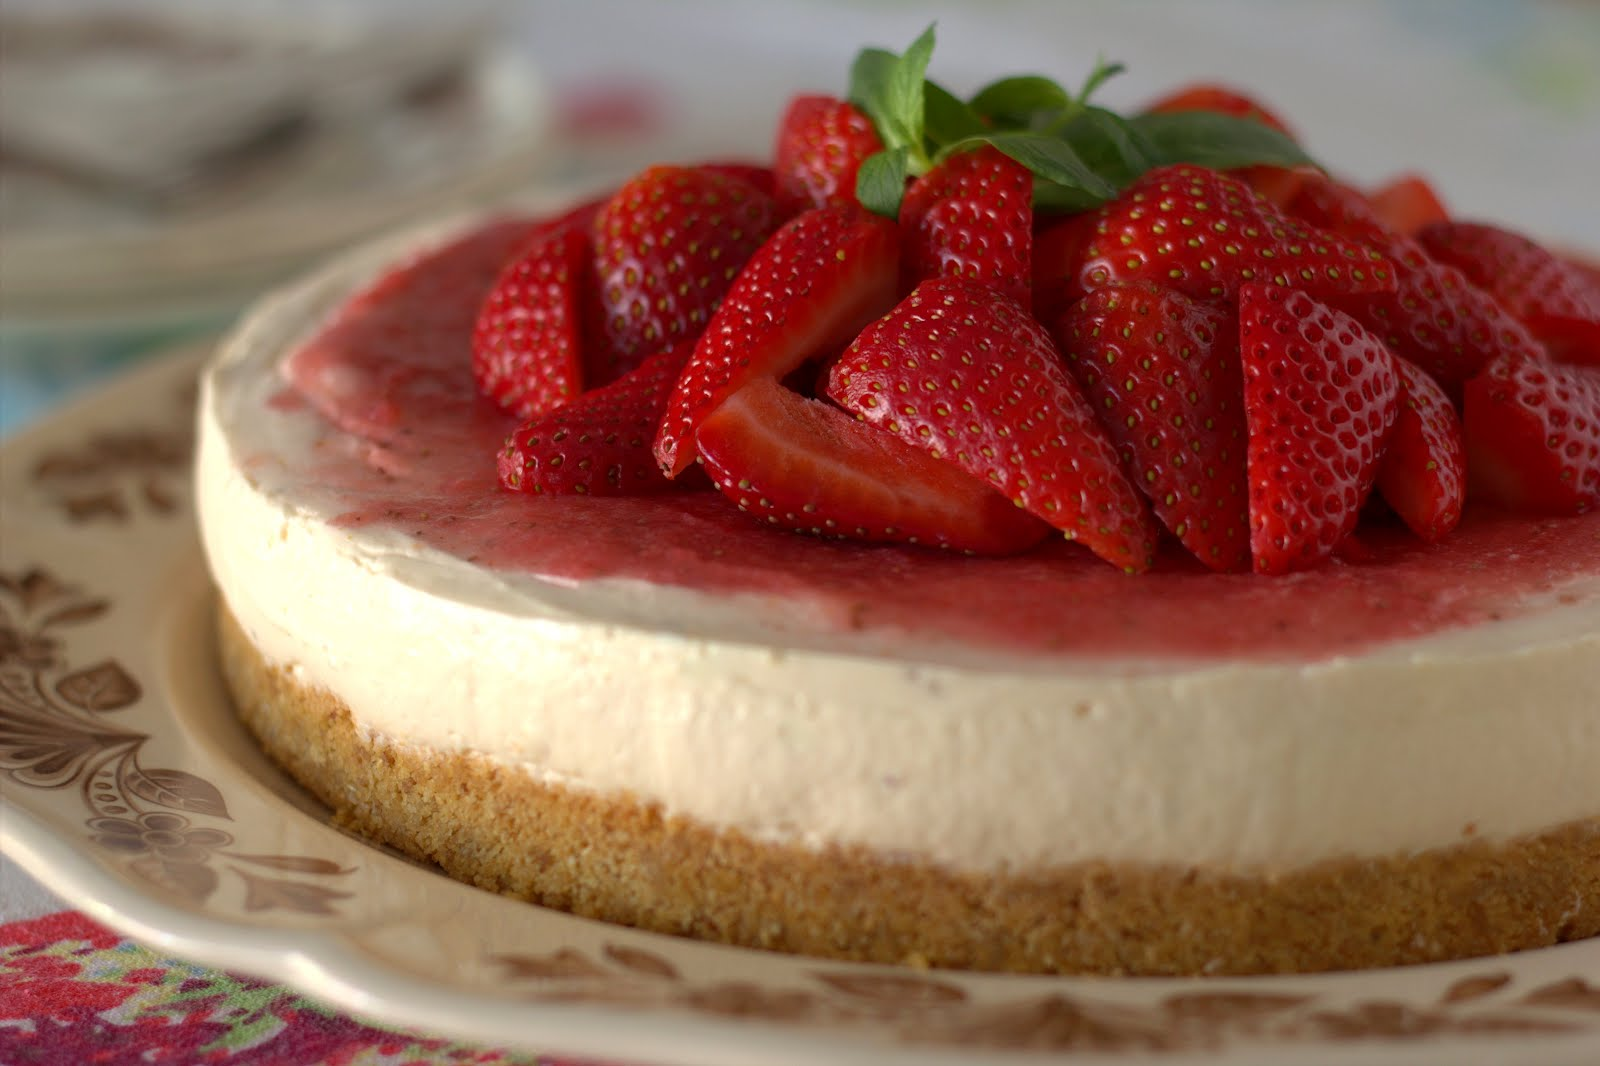 The Lettuce Shop: No bake strawberry cheesecake